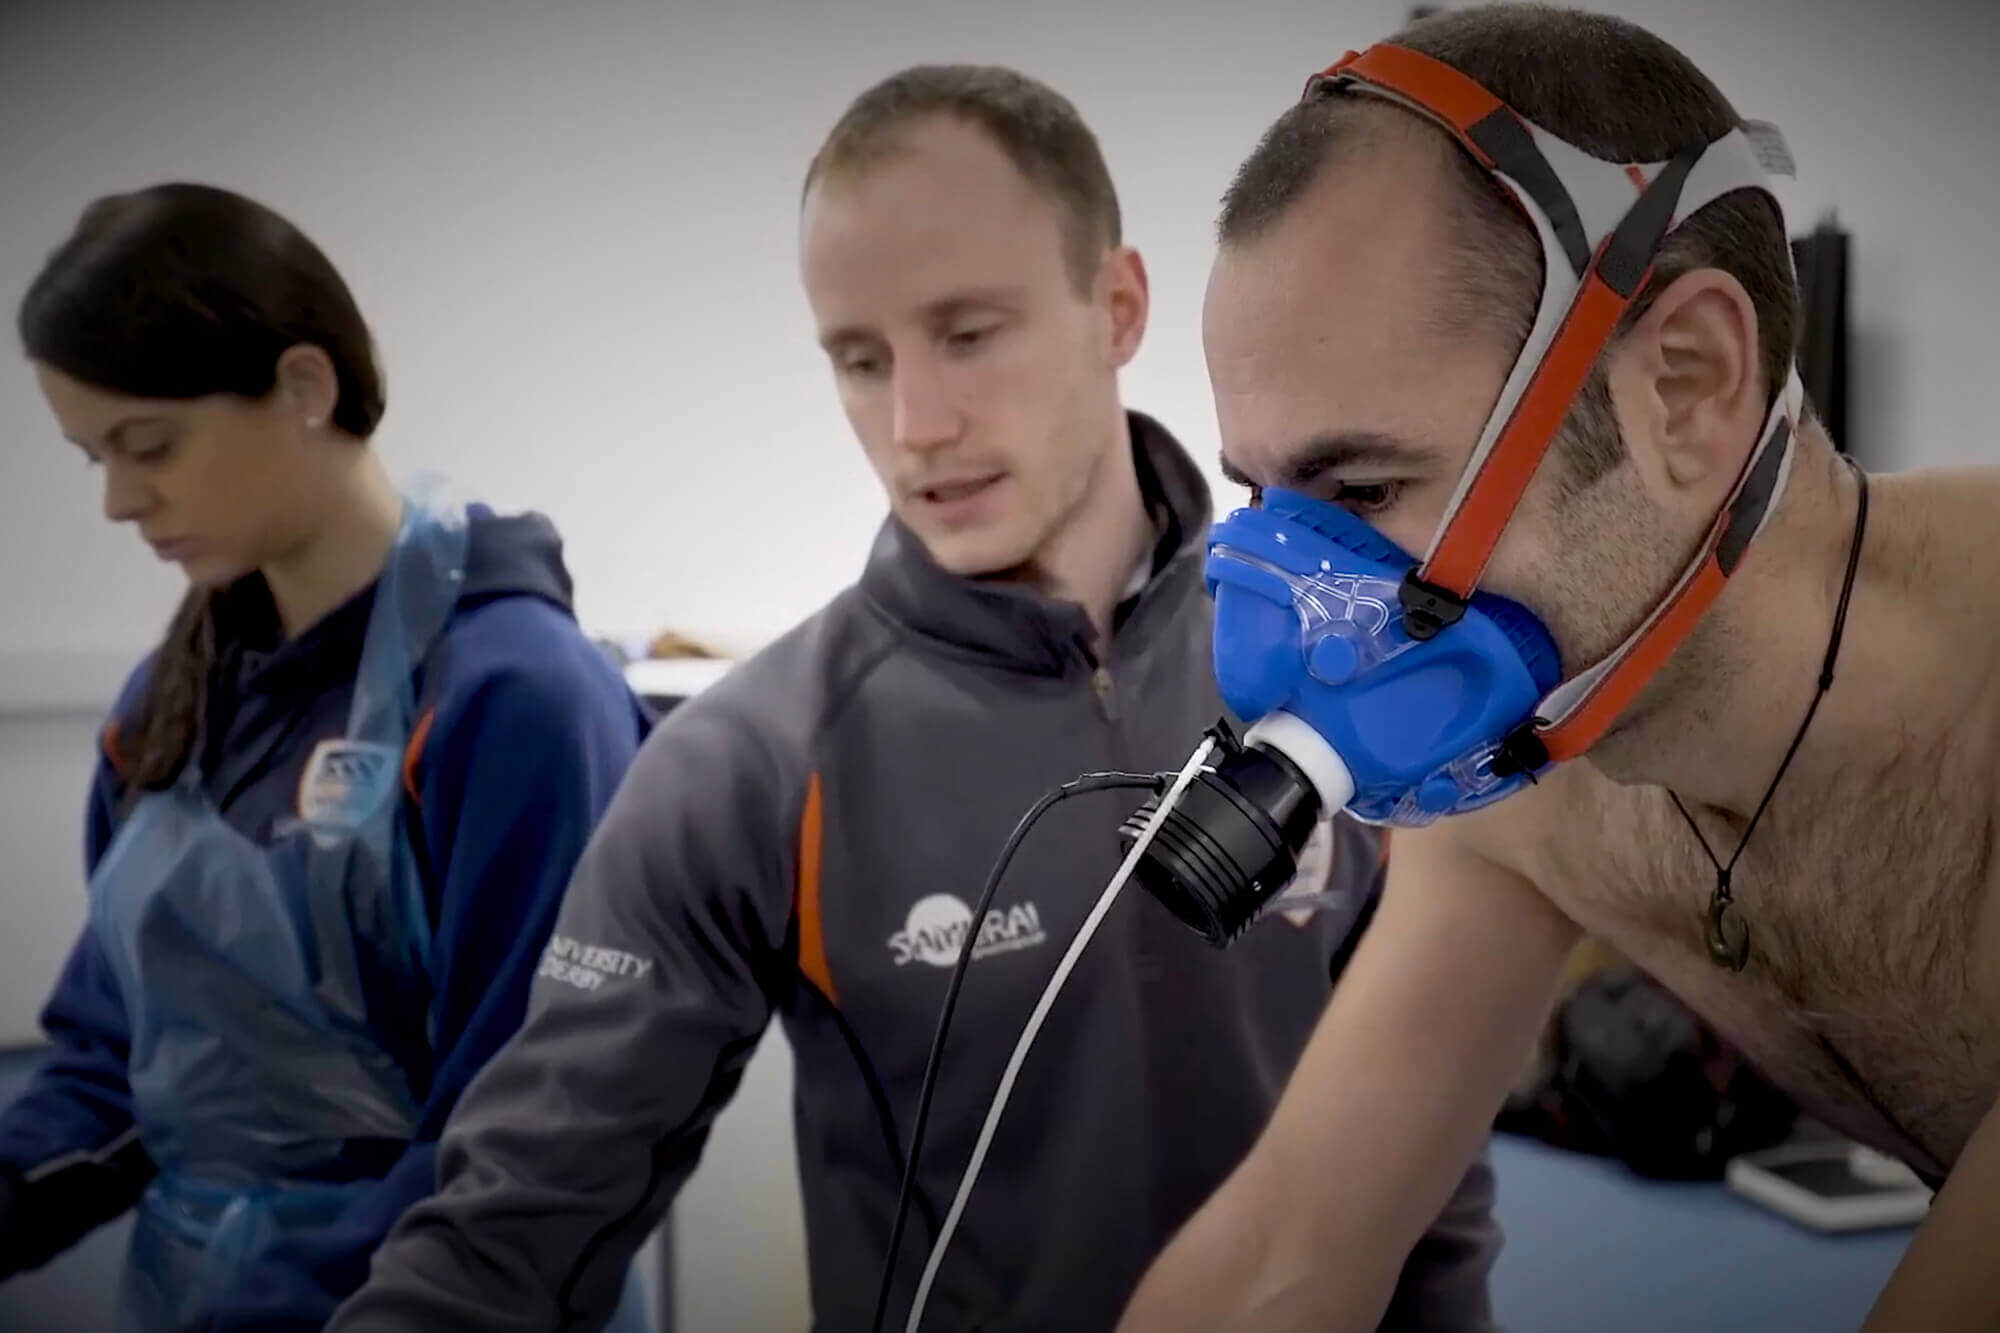 Mark Faghy conducting research in the background, with a man wearing an oxygen mask.